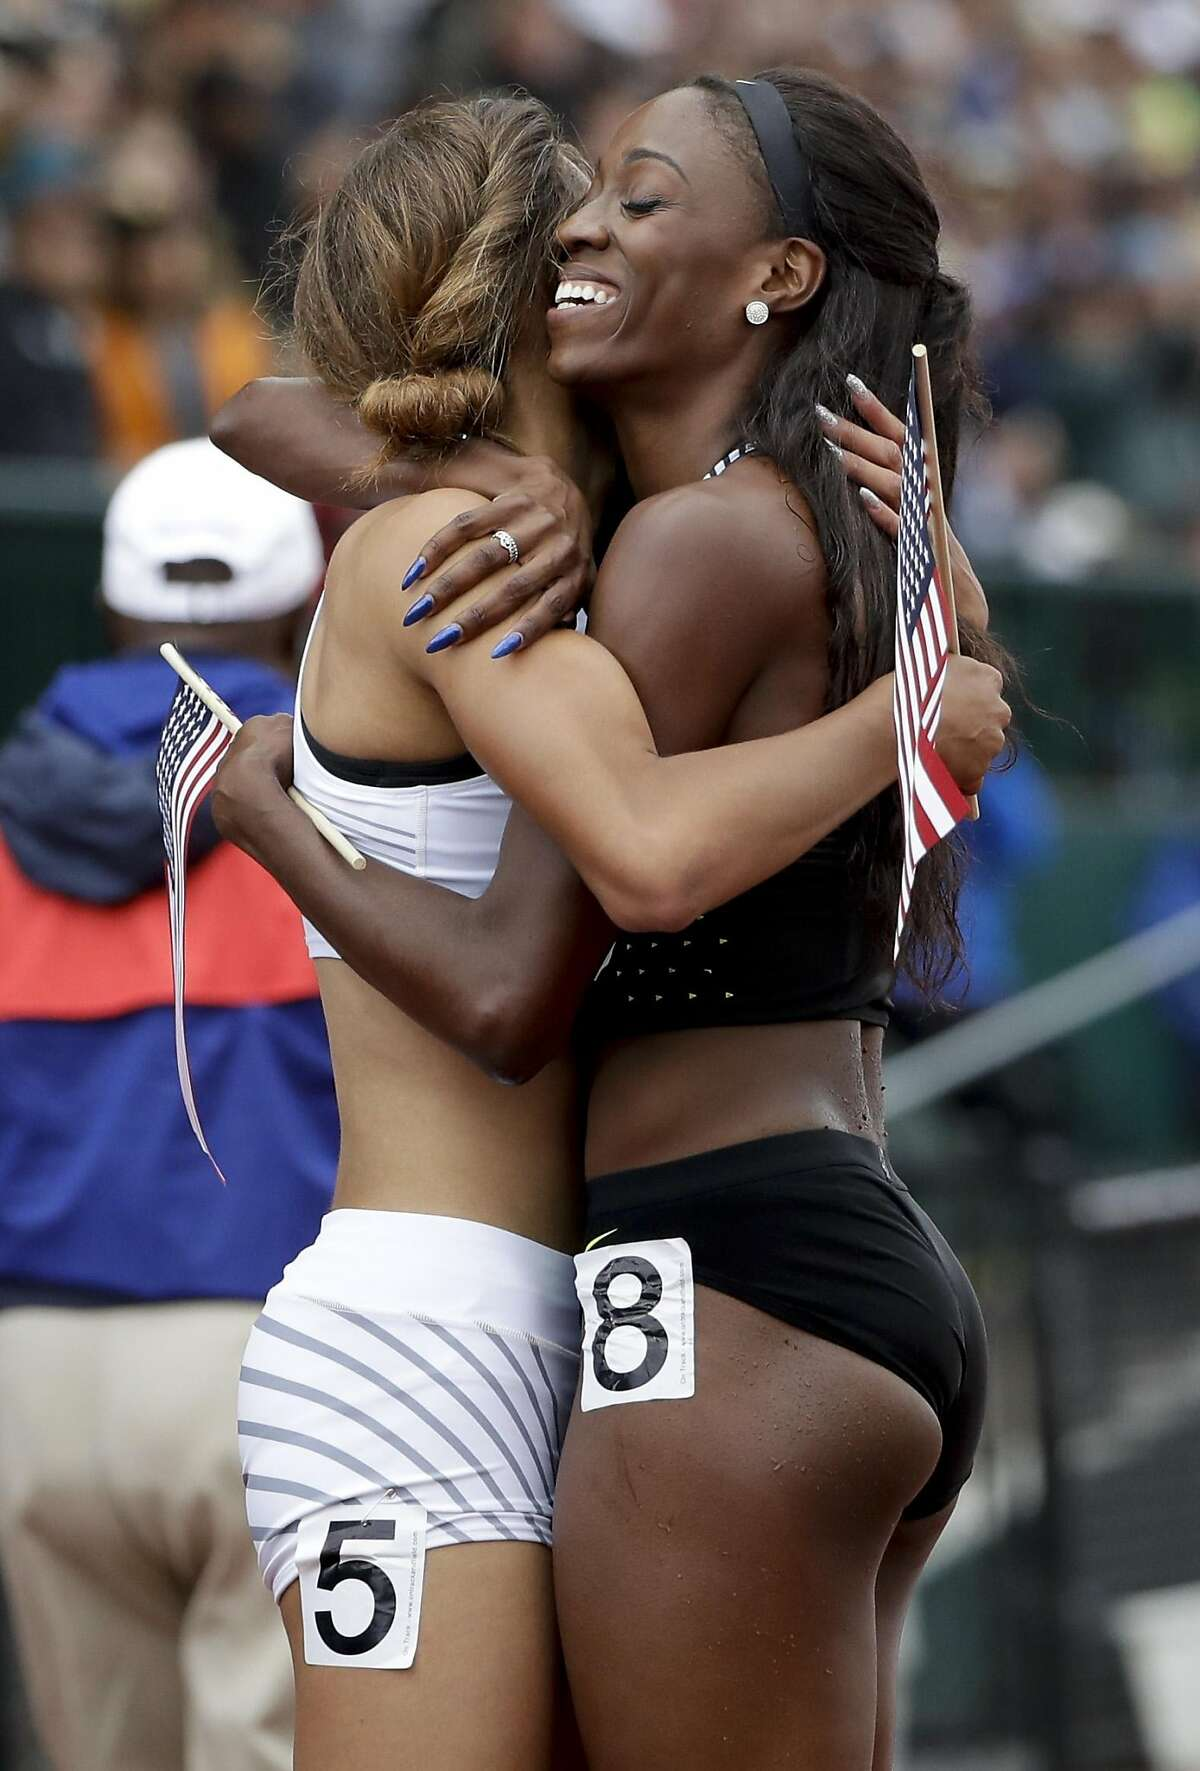 Dalilah Muhammad, right, winner in the finals of the women's 400-meter hurdles hugs Sydney McLaughlin, third place finisher, at the U.S. Olympic Track and Field Trials, Sunday, July 10, 2016, in Eugene Ore. (AP Photo/Marcio Jose Sanchez)